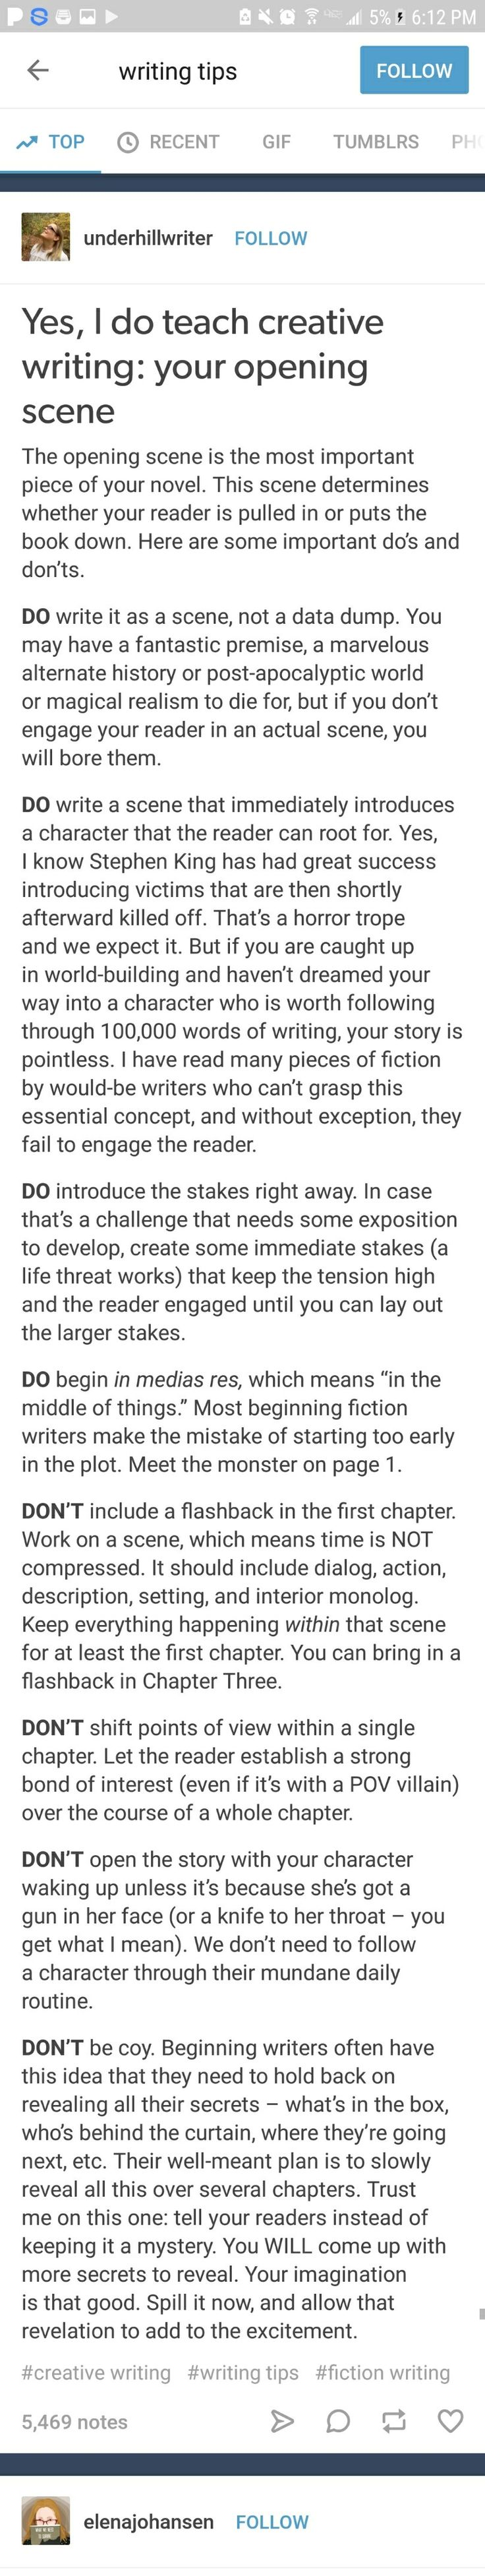 creative writing stories ideas 101 writing prompts structure allows ideas to flow more cohesively and helps develop story below are 101 random writing prompts or ideas some are creative.